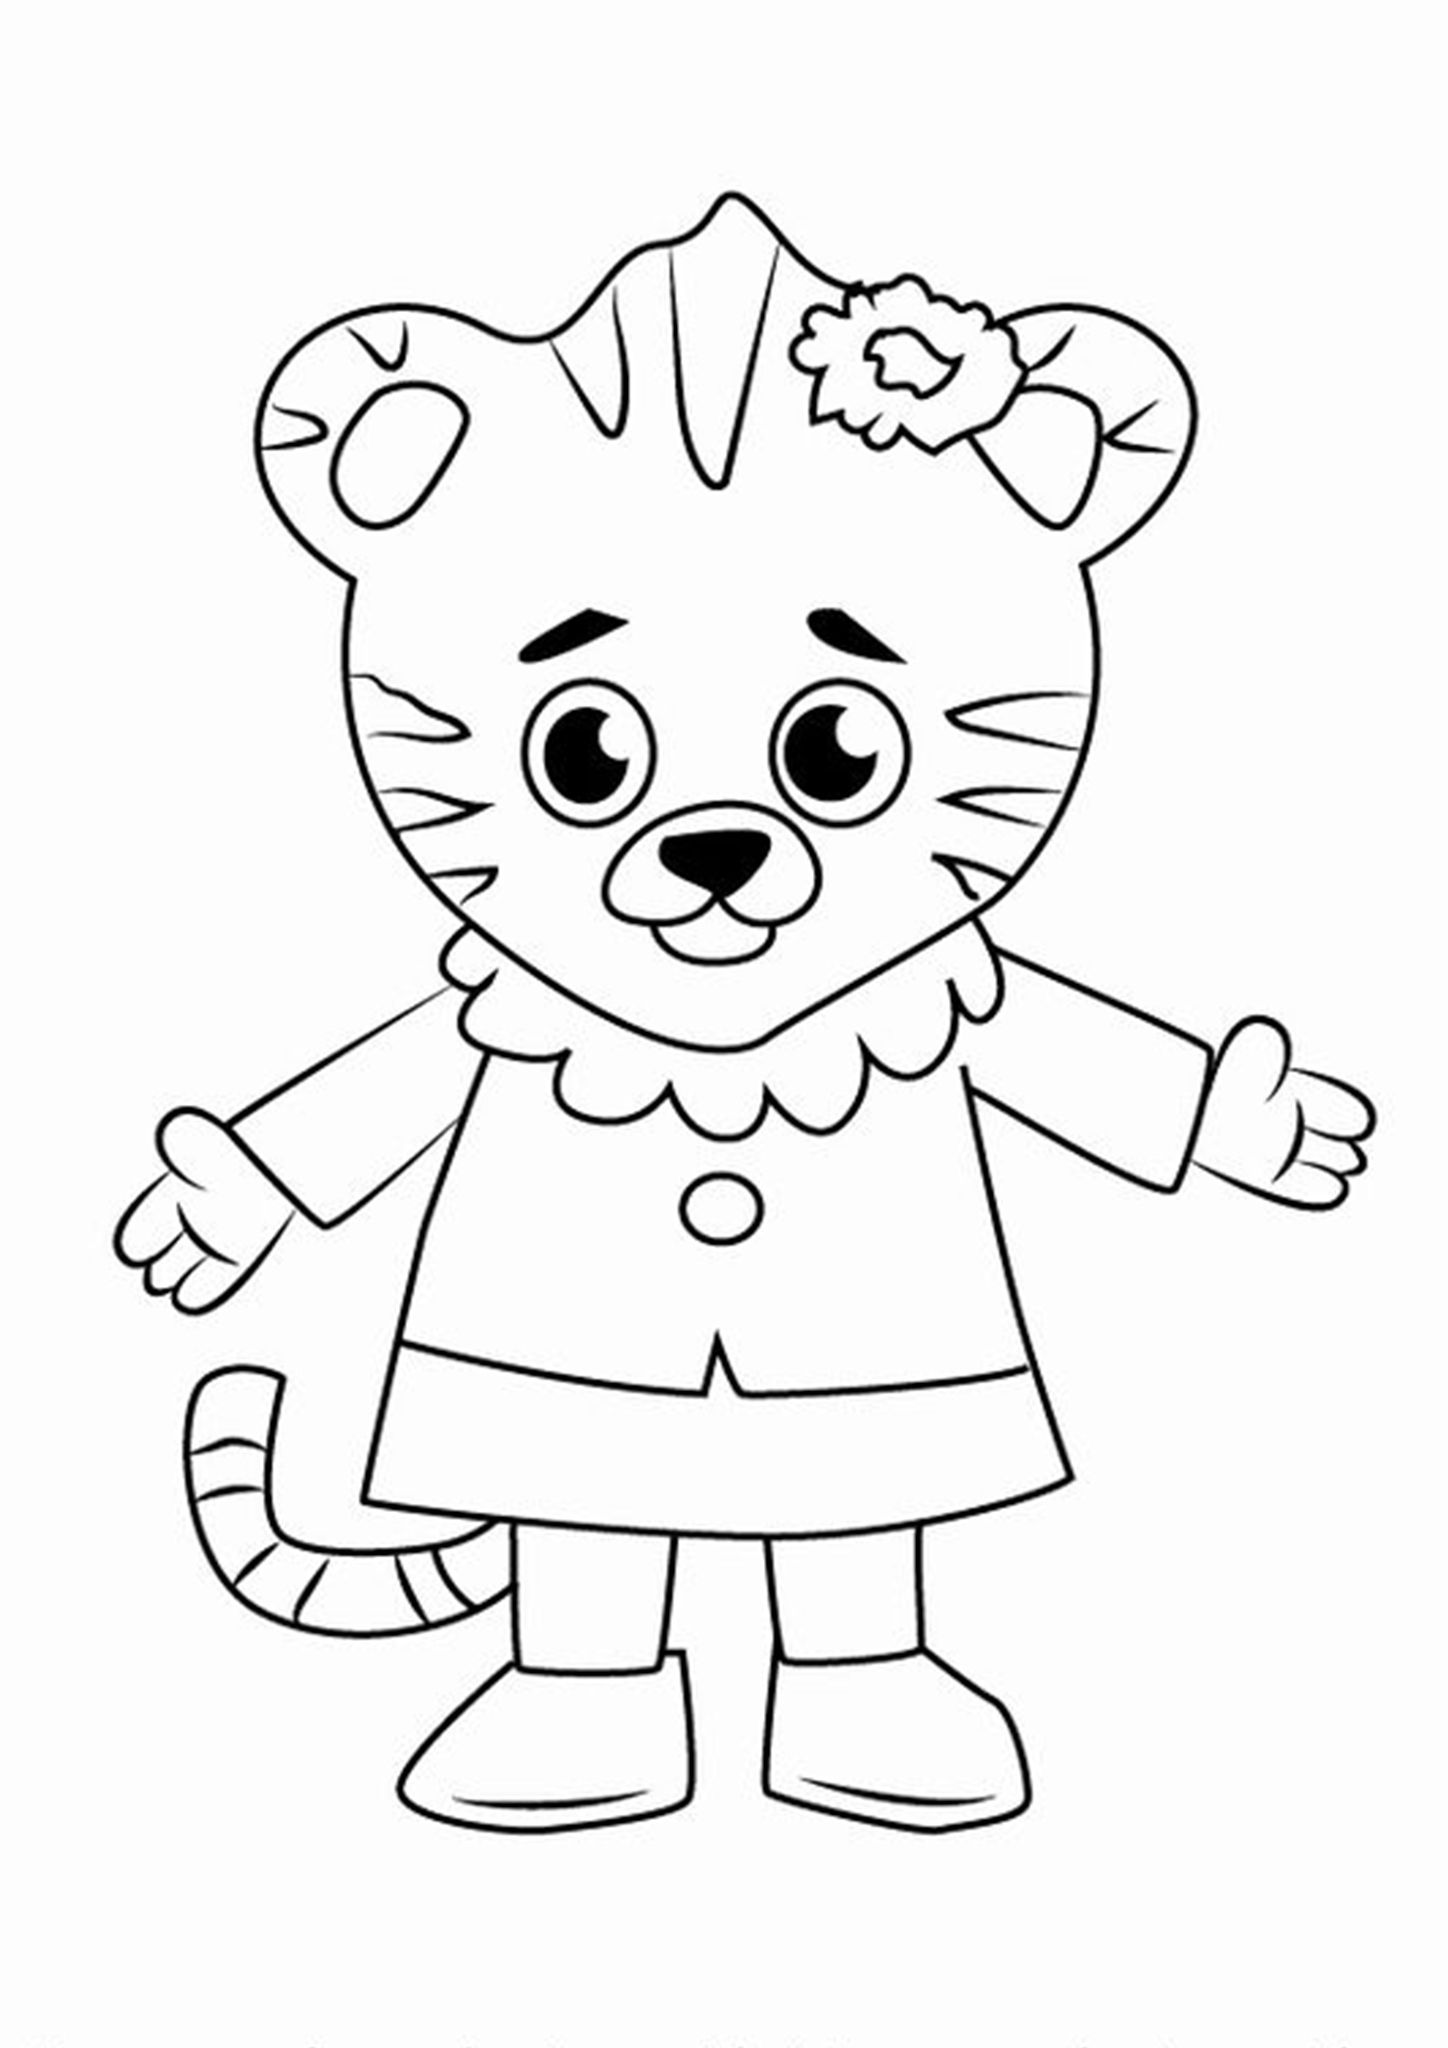 Free Easy To Print Tiger Coloring Pages In 2020 With Images Daniel Tiger Coloring Books Dinosaur Coloring Pages